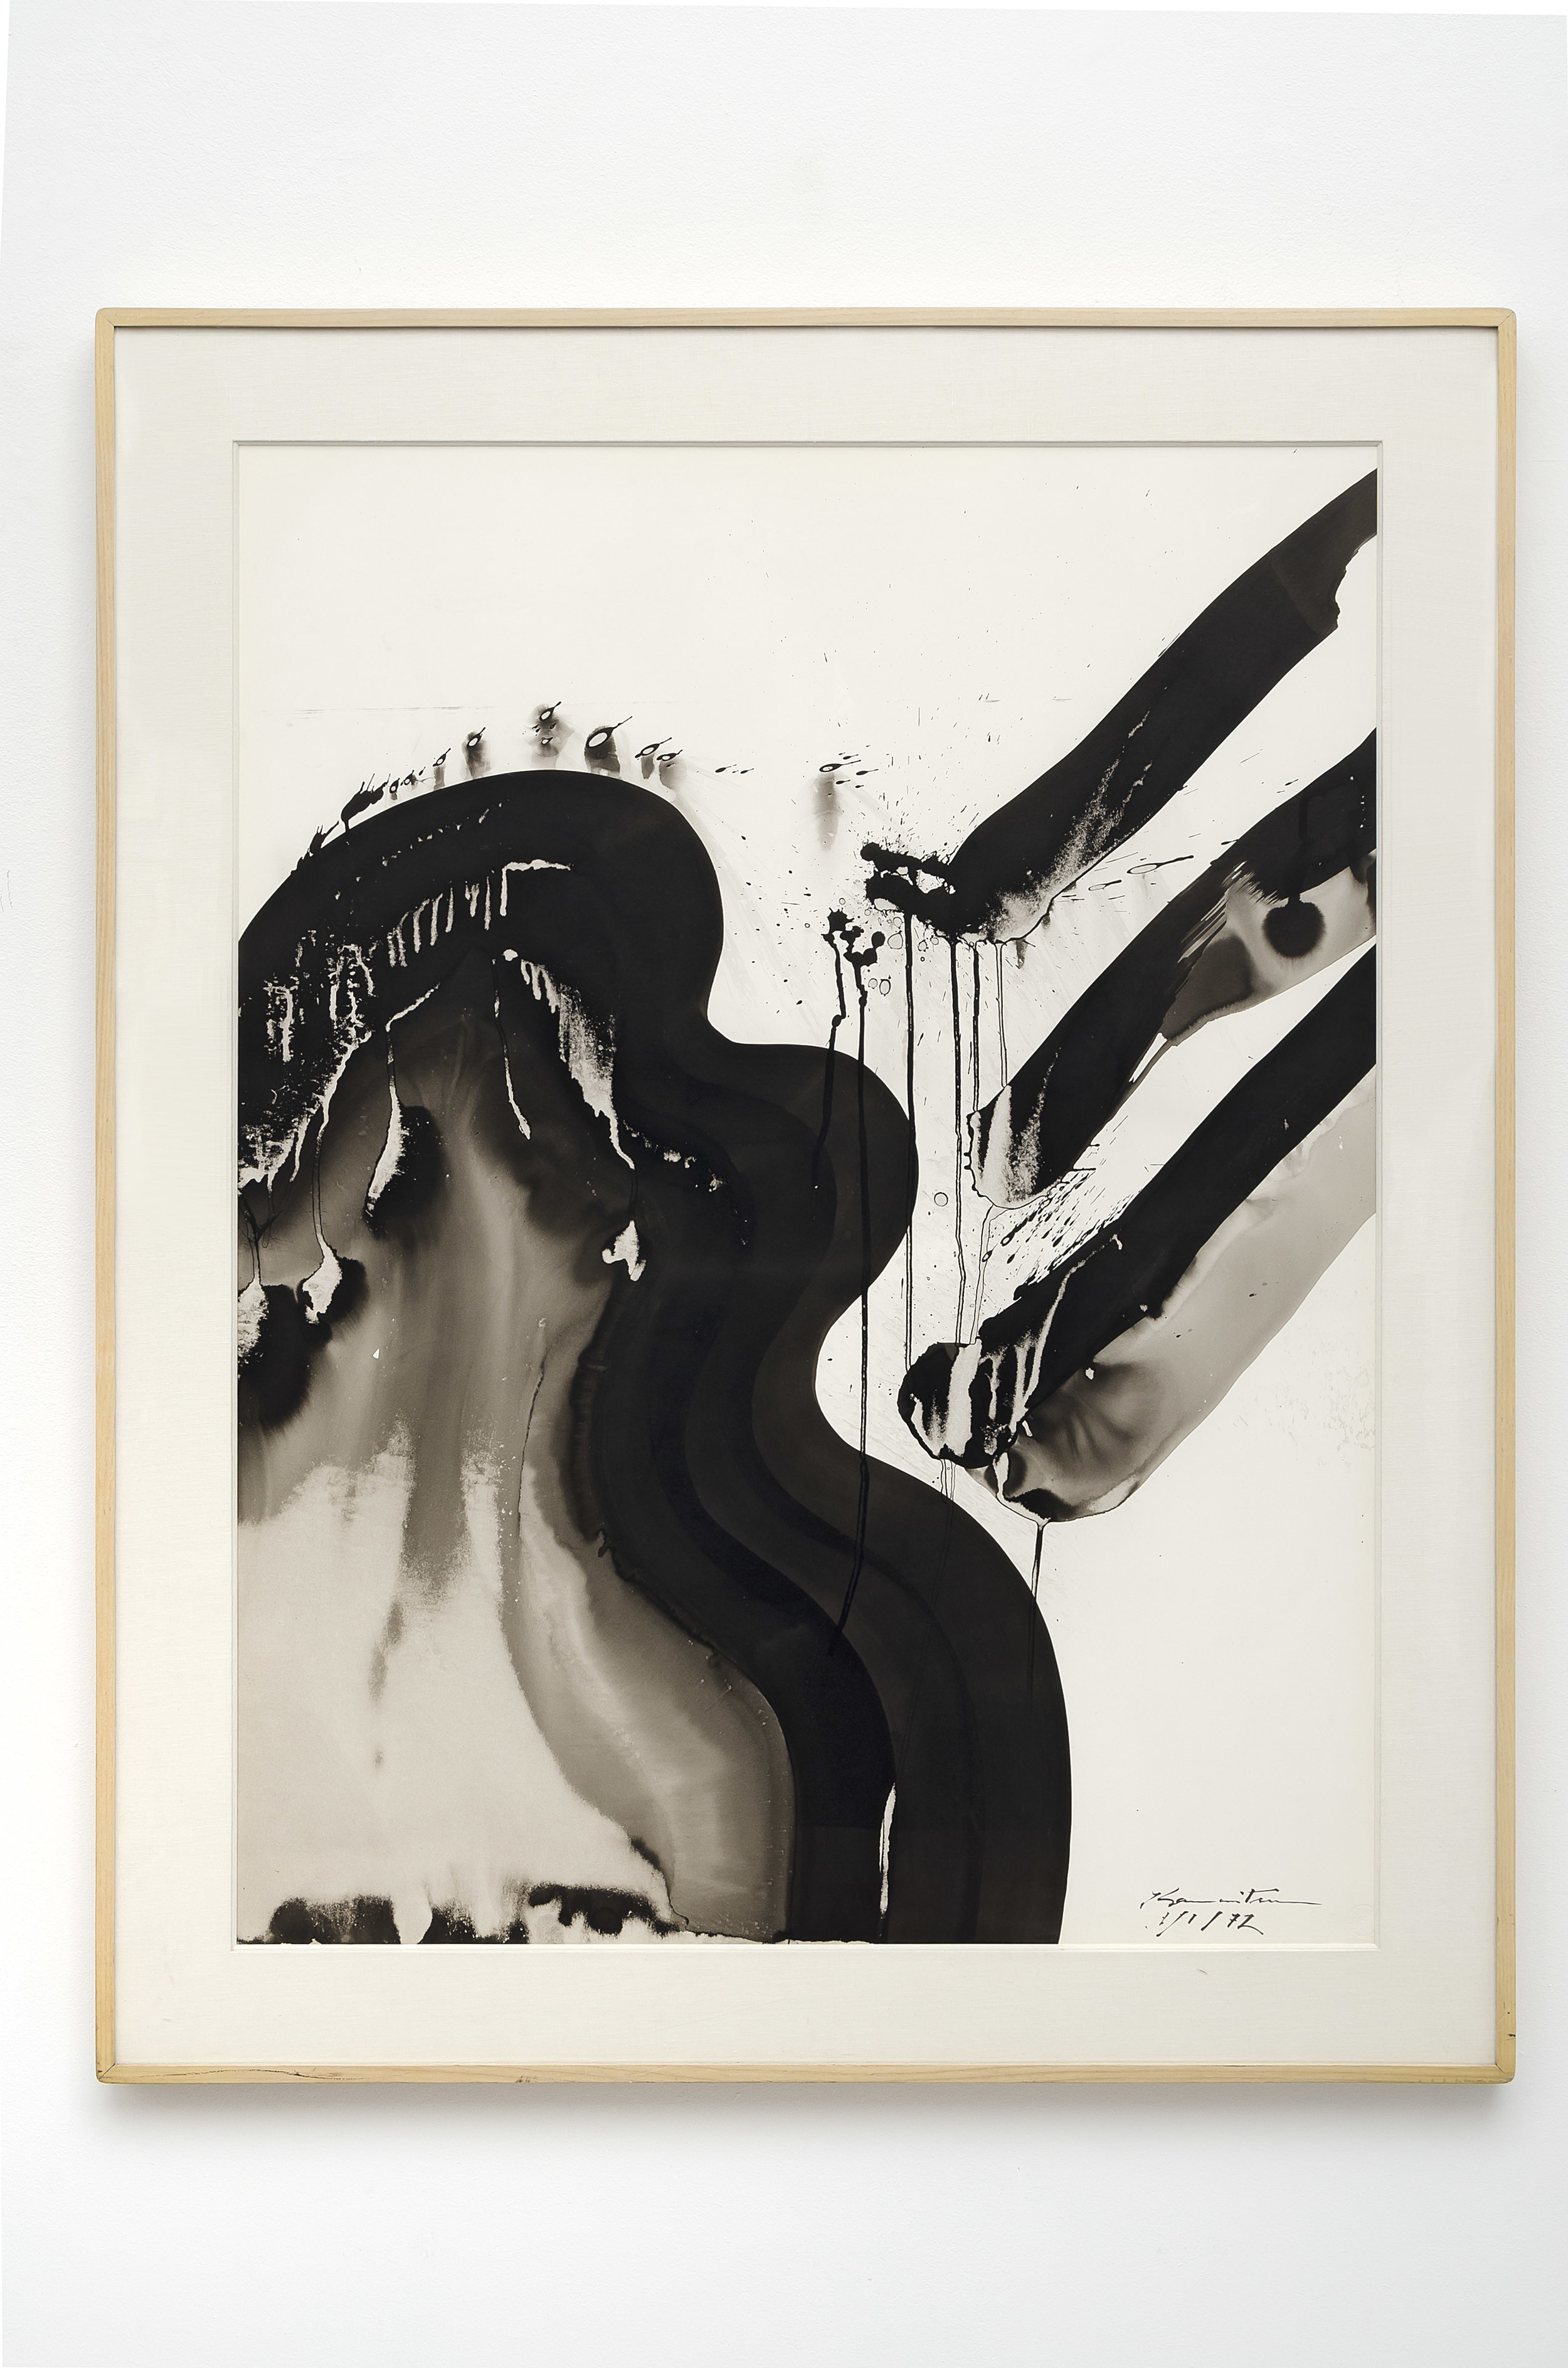 Pacific Series- 2 am , 1972 sumi ink on paper 39 1/4 x 28 7/8 inches; 99.7 x 73.3 centimeters